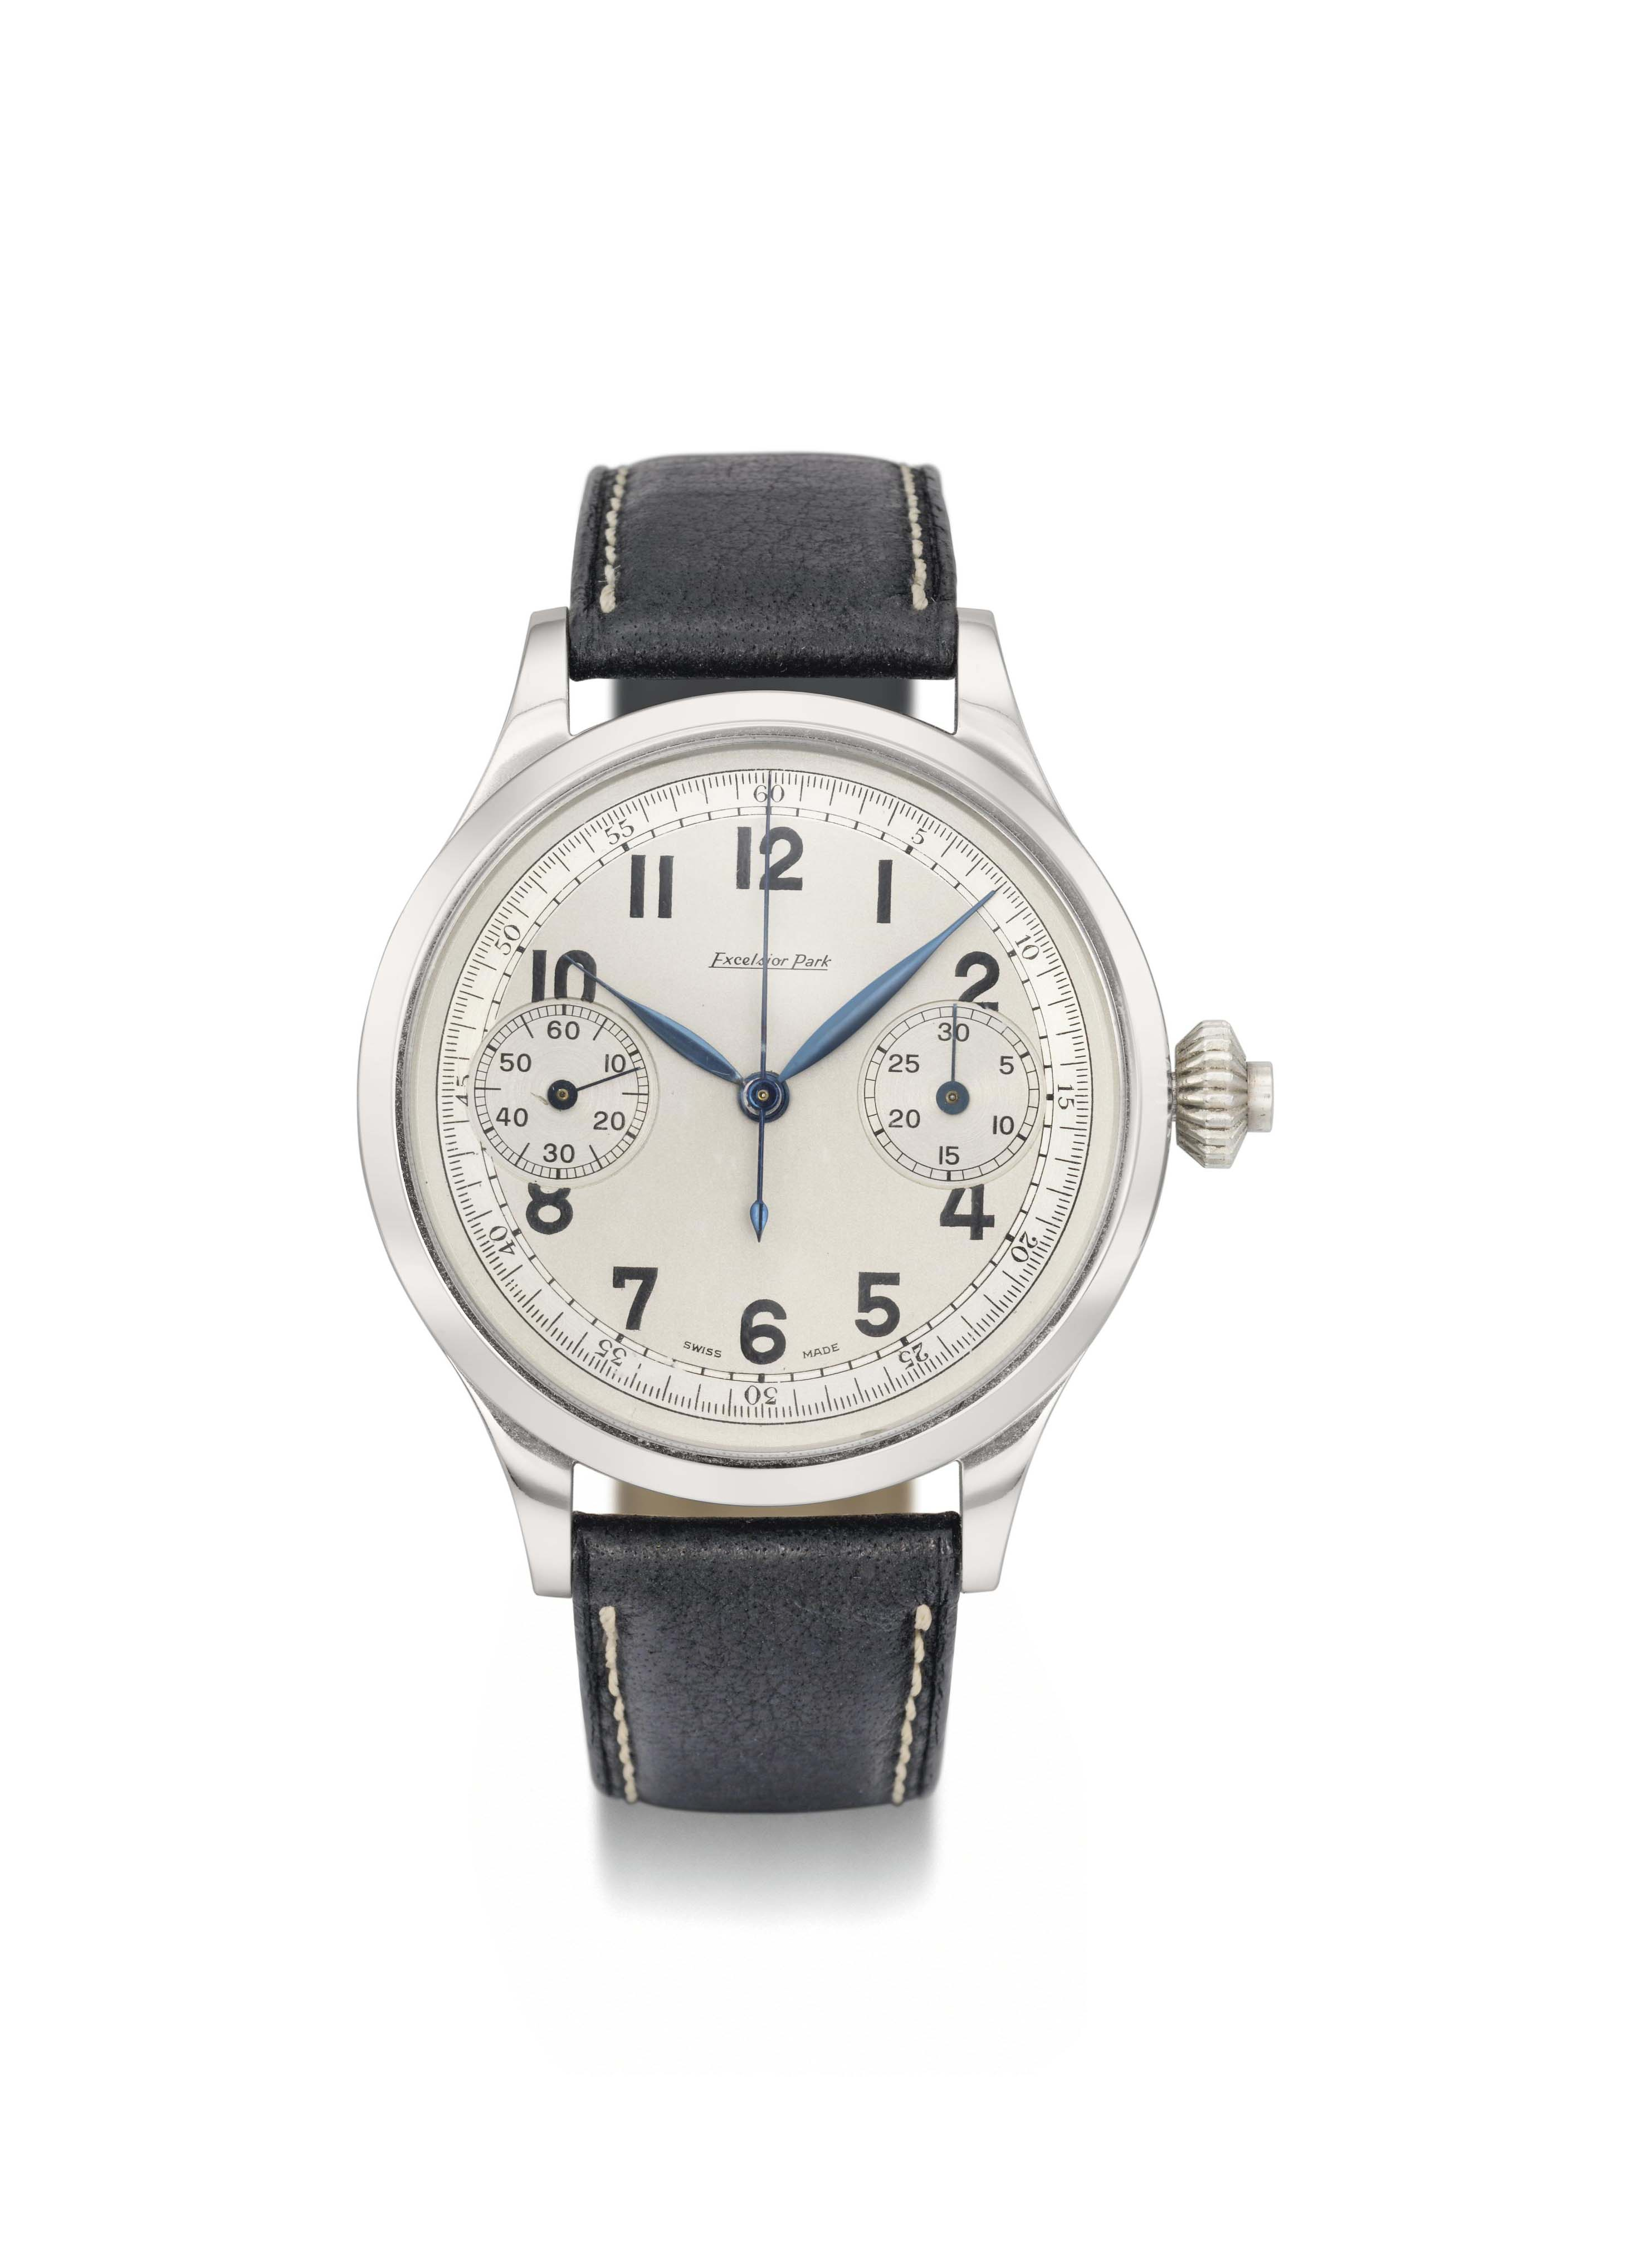 Excelsior Park. An unusual oversized stainless steel single button chronograph wristwatch with two-tone silvered dial and patented spare parts compartment